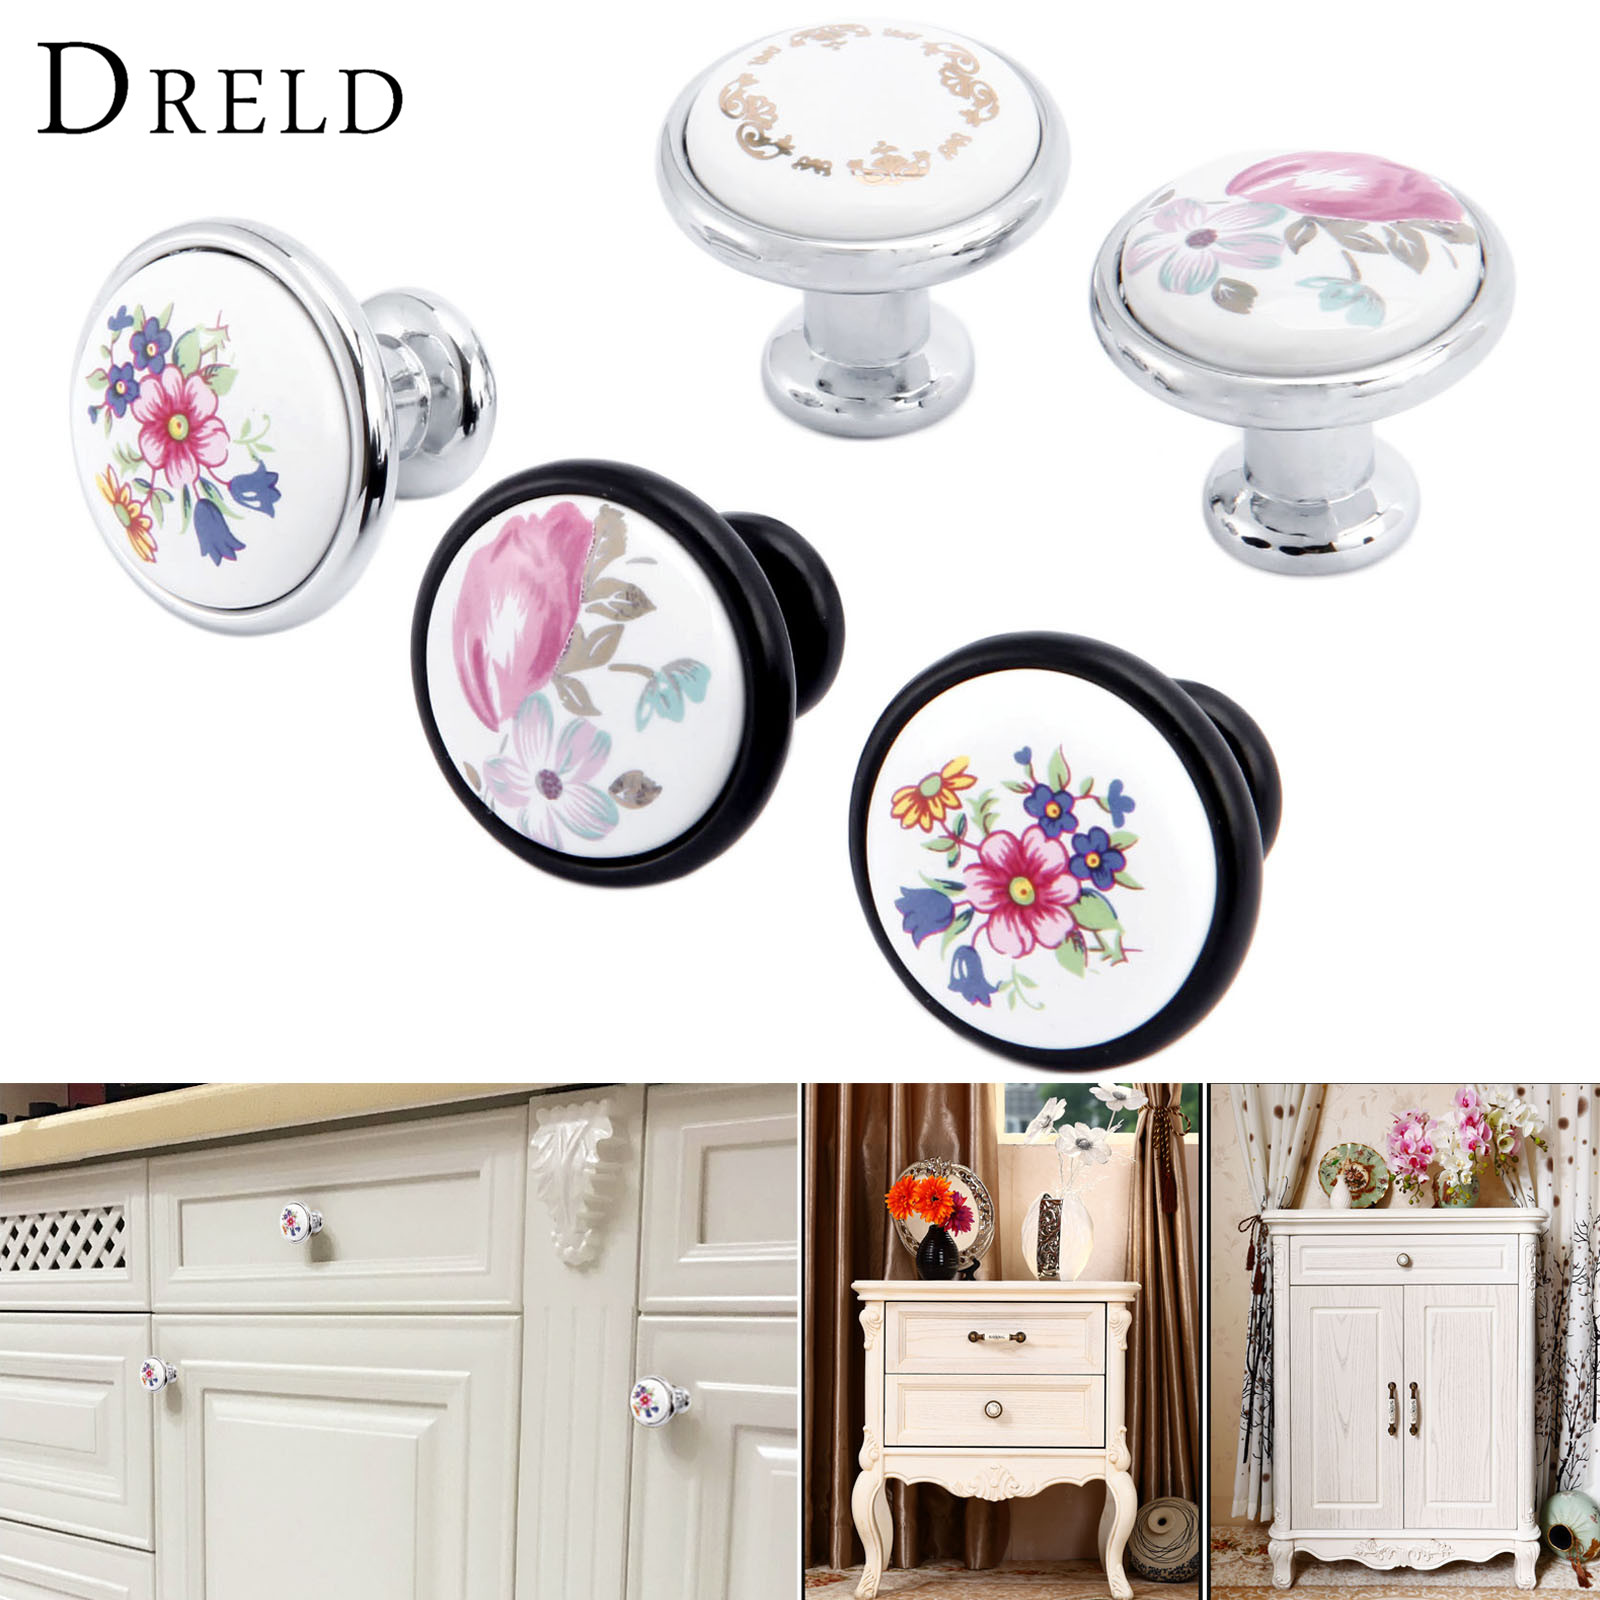 DRELD Furniture Handle Modern Cabinet Knobs and Handles Door Cupboard Drawer Pull Handle for Kitchen Bedroom Furniture Hardware retro vintage kitchen drawer cabinet door flower handle furniture knobs hardware cupboard antique metal shell pull handles 1pc